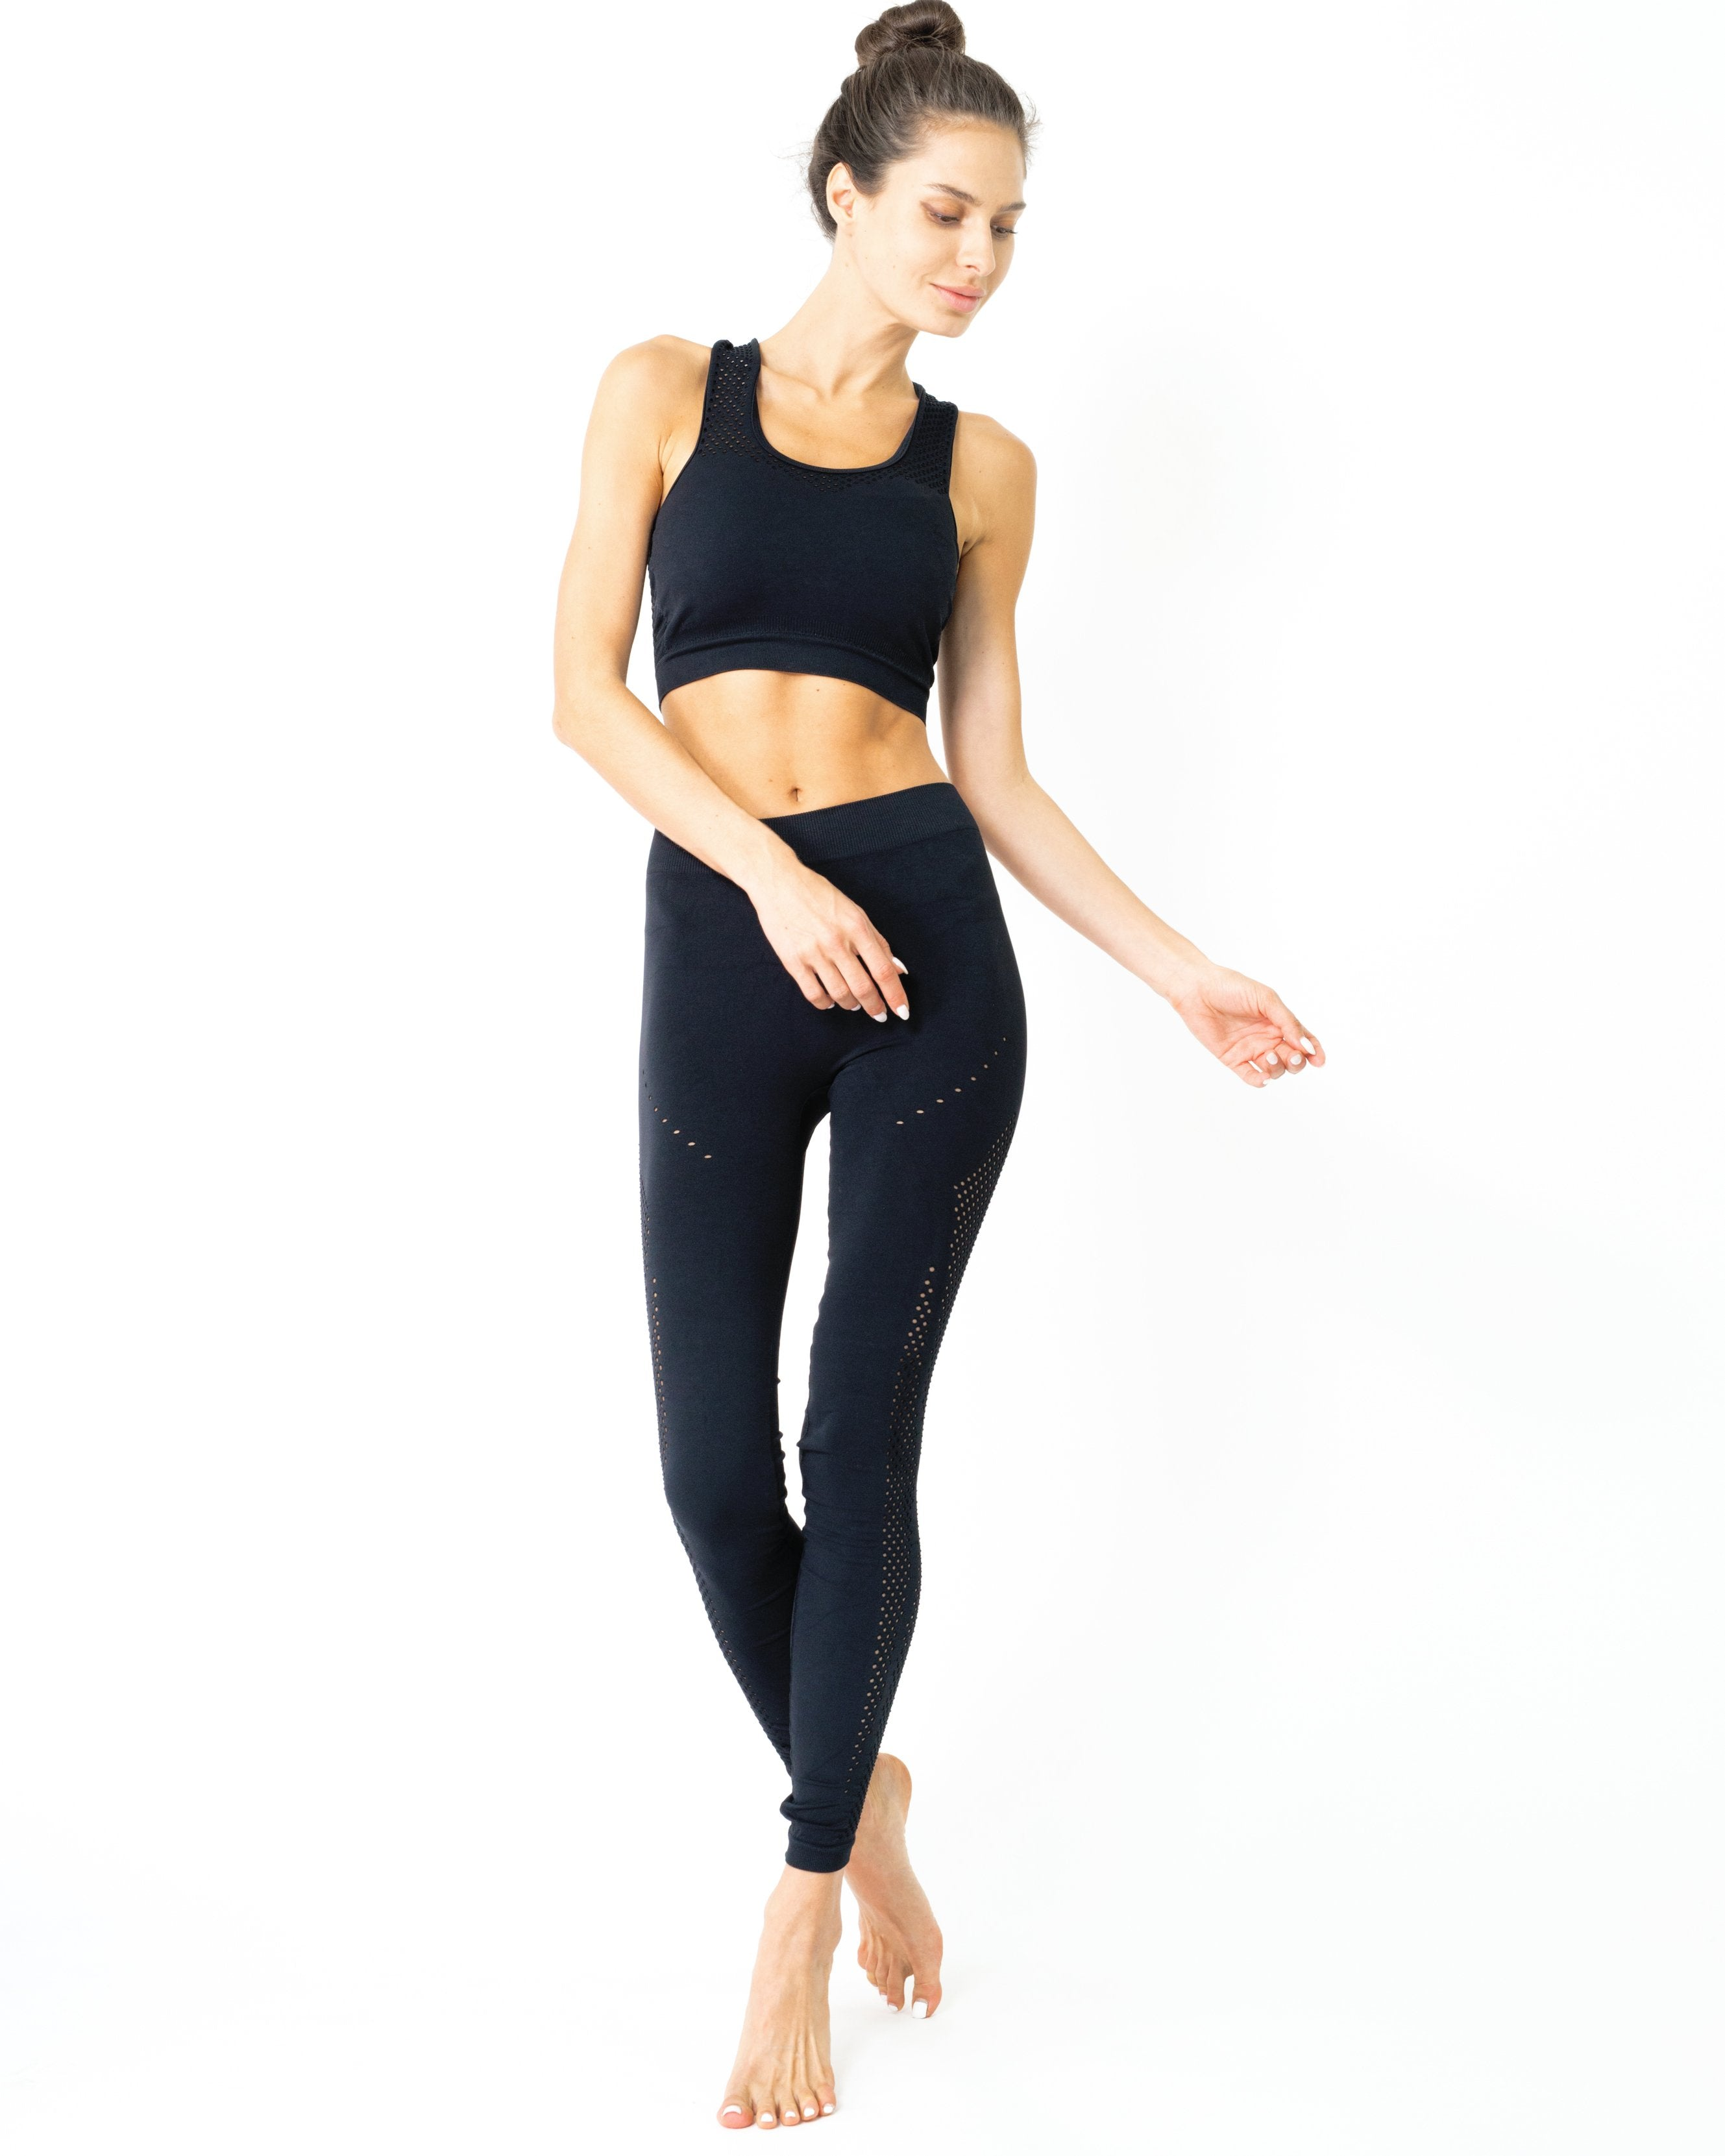 SALE! 50% OFF! Athens Seamless Sports Bra - Black [MADE IN ITALY]